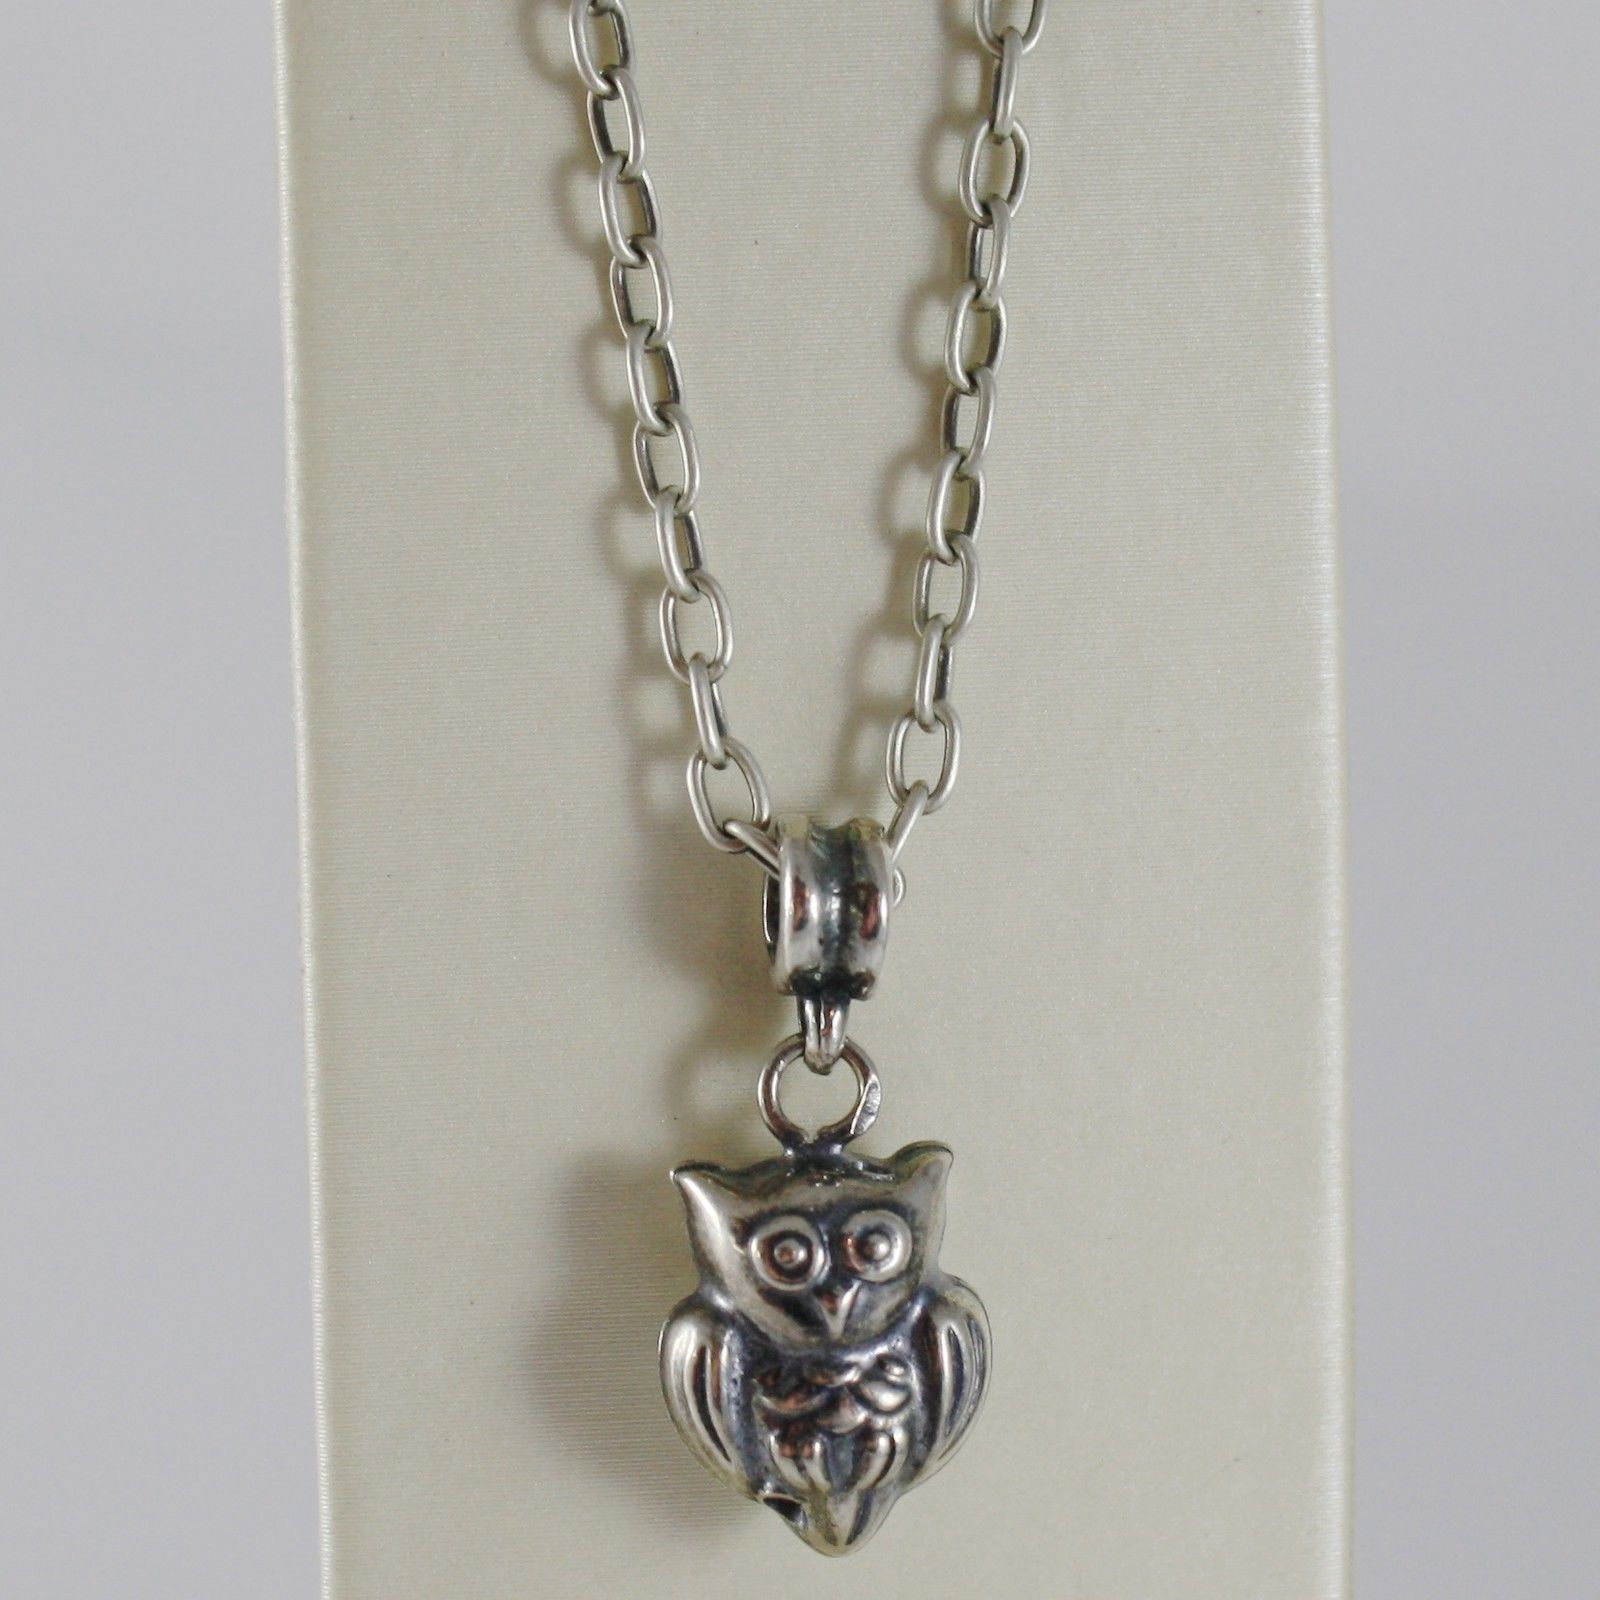 925 BURNISHED SILVER NECKLACE OWL BIRD PENDANT WITH OVAL CHAIN MADE IN ITALY